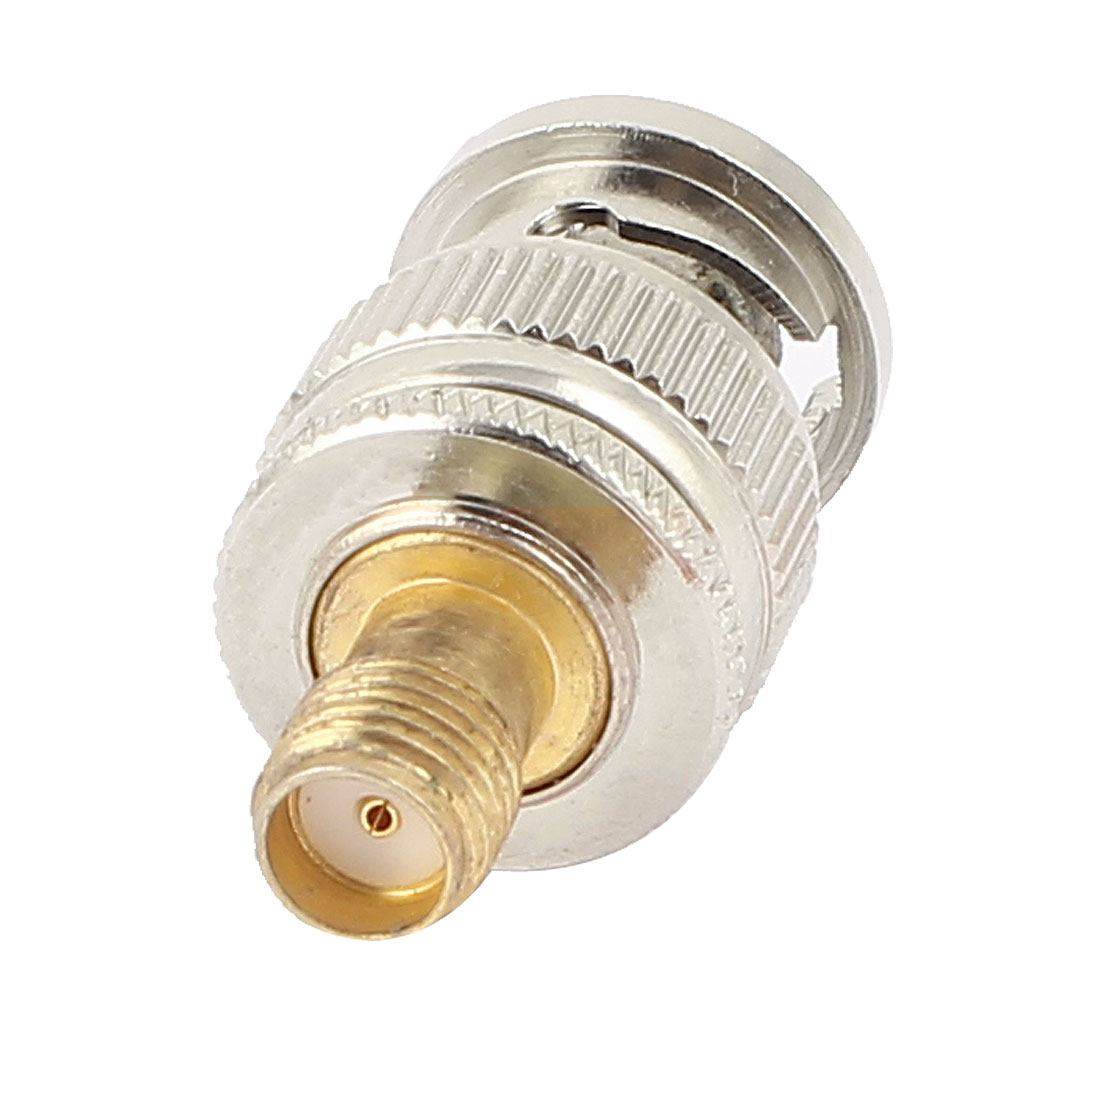 BNC Male Plug to SMA Female Jack Coax Cable Video Adapter Connector